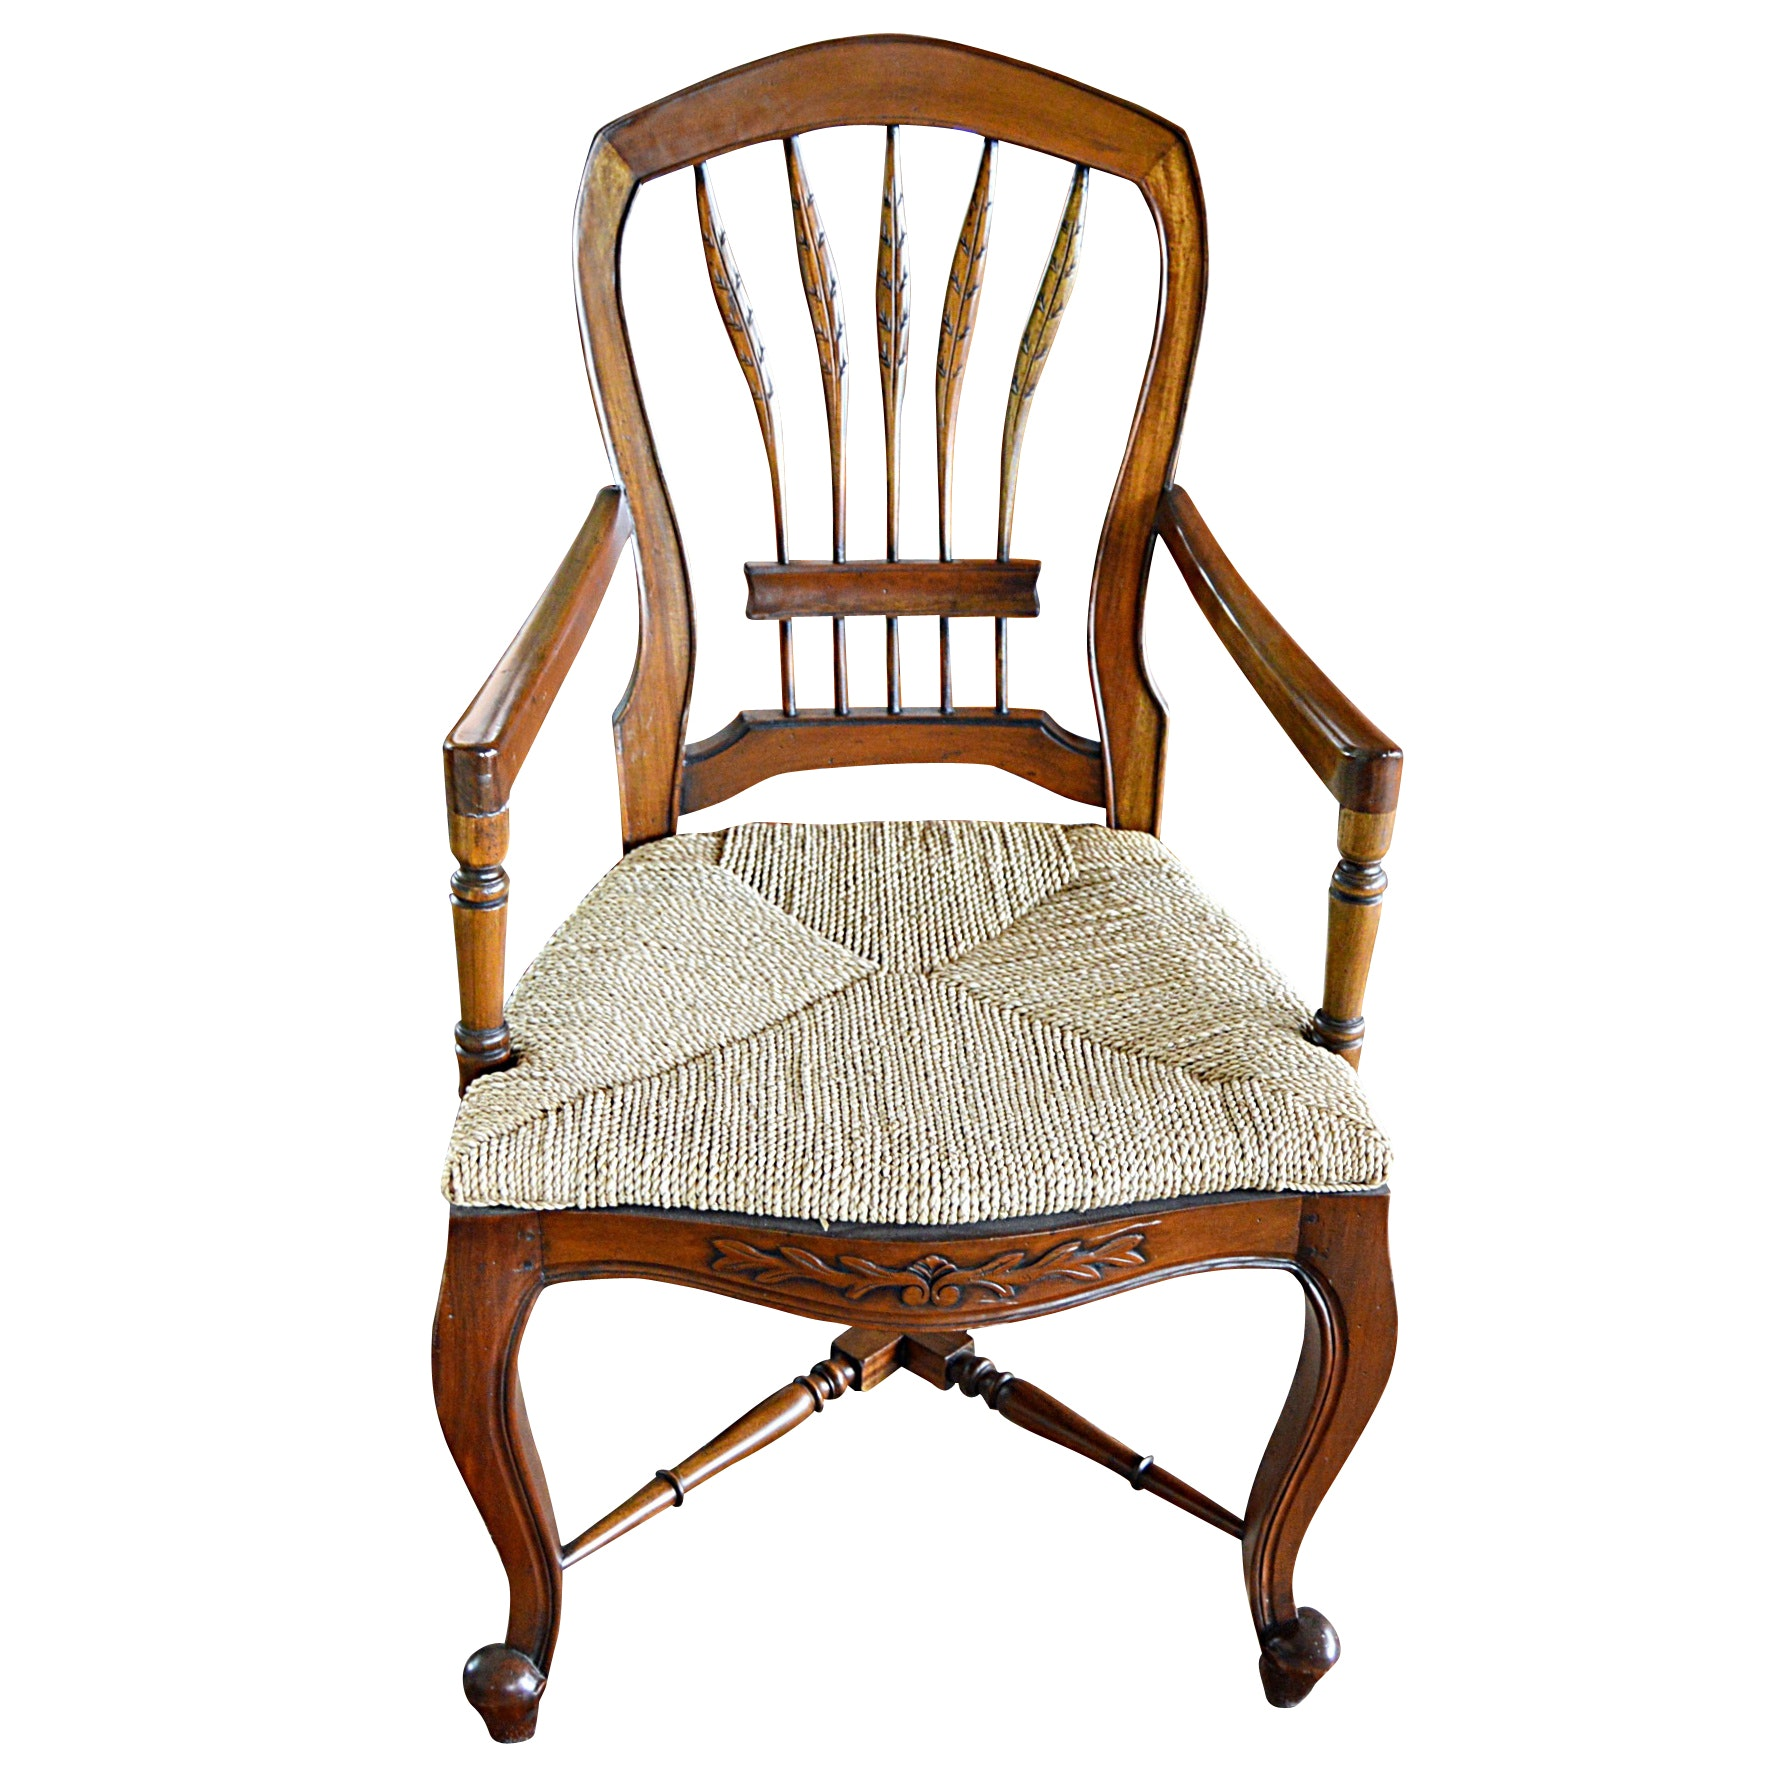 Antique Queen Anne Style Armchair with Rattan Seat